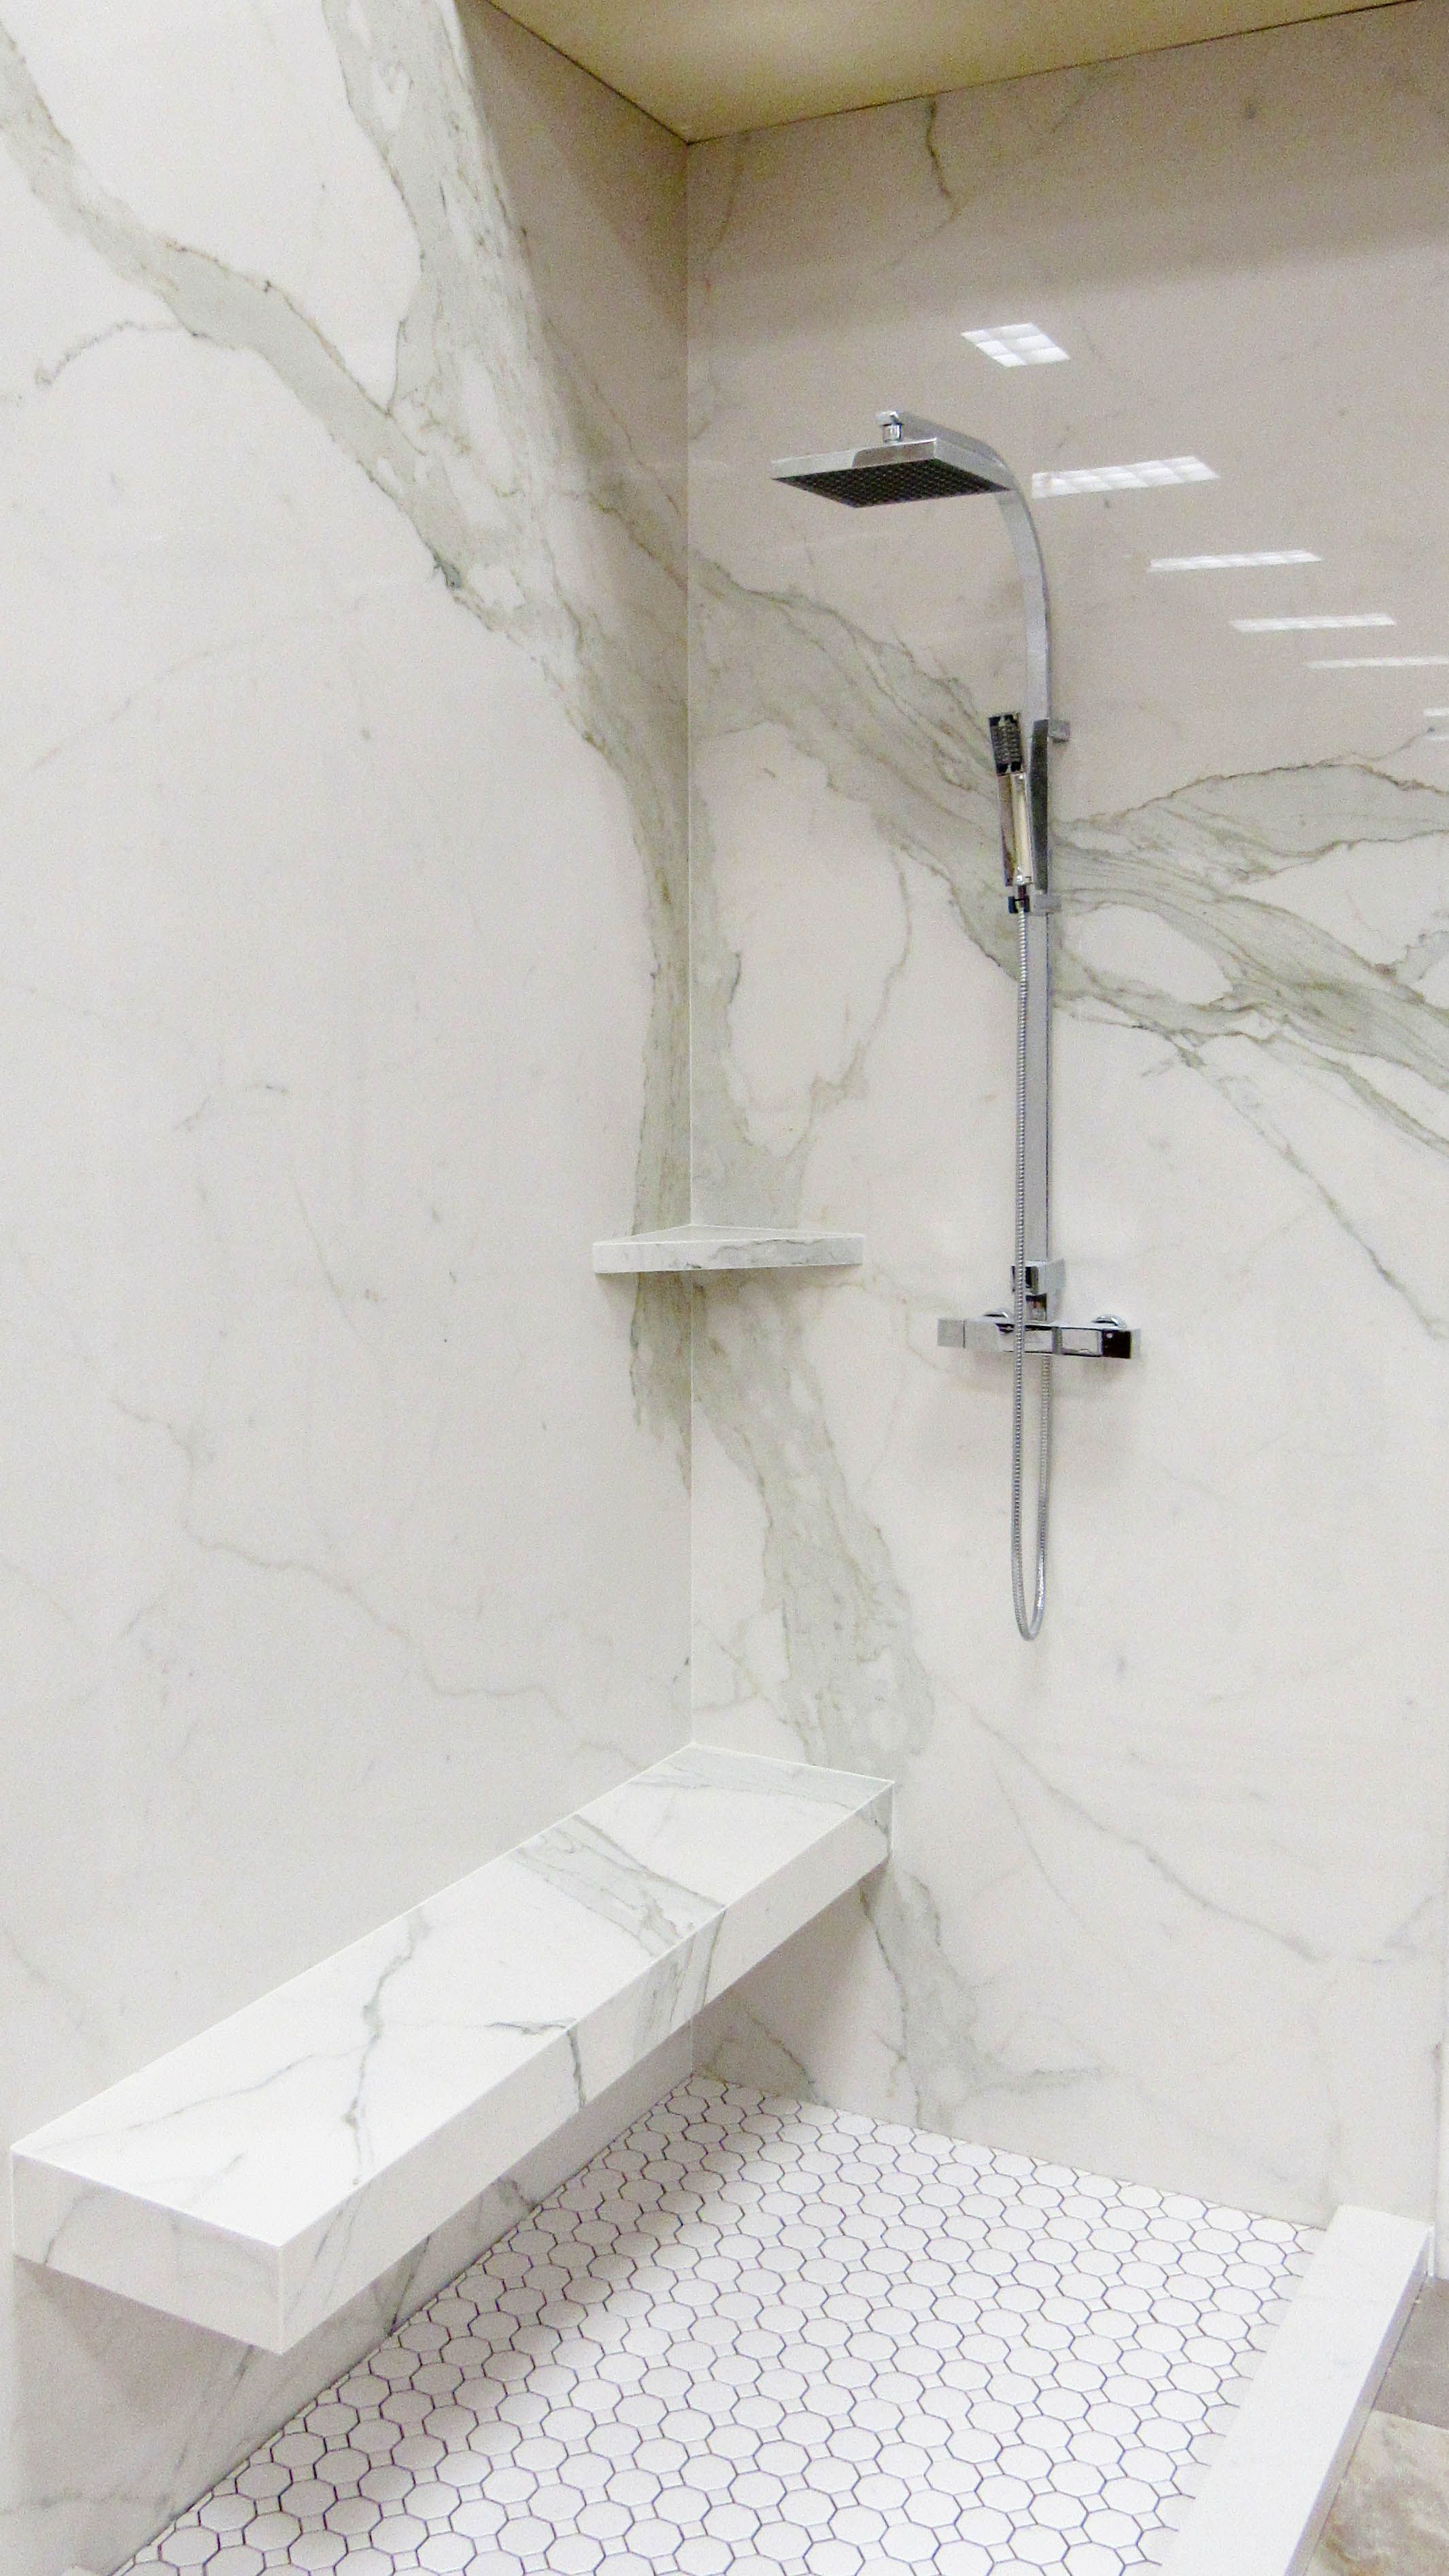 Grout Less Shower System Using Plane